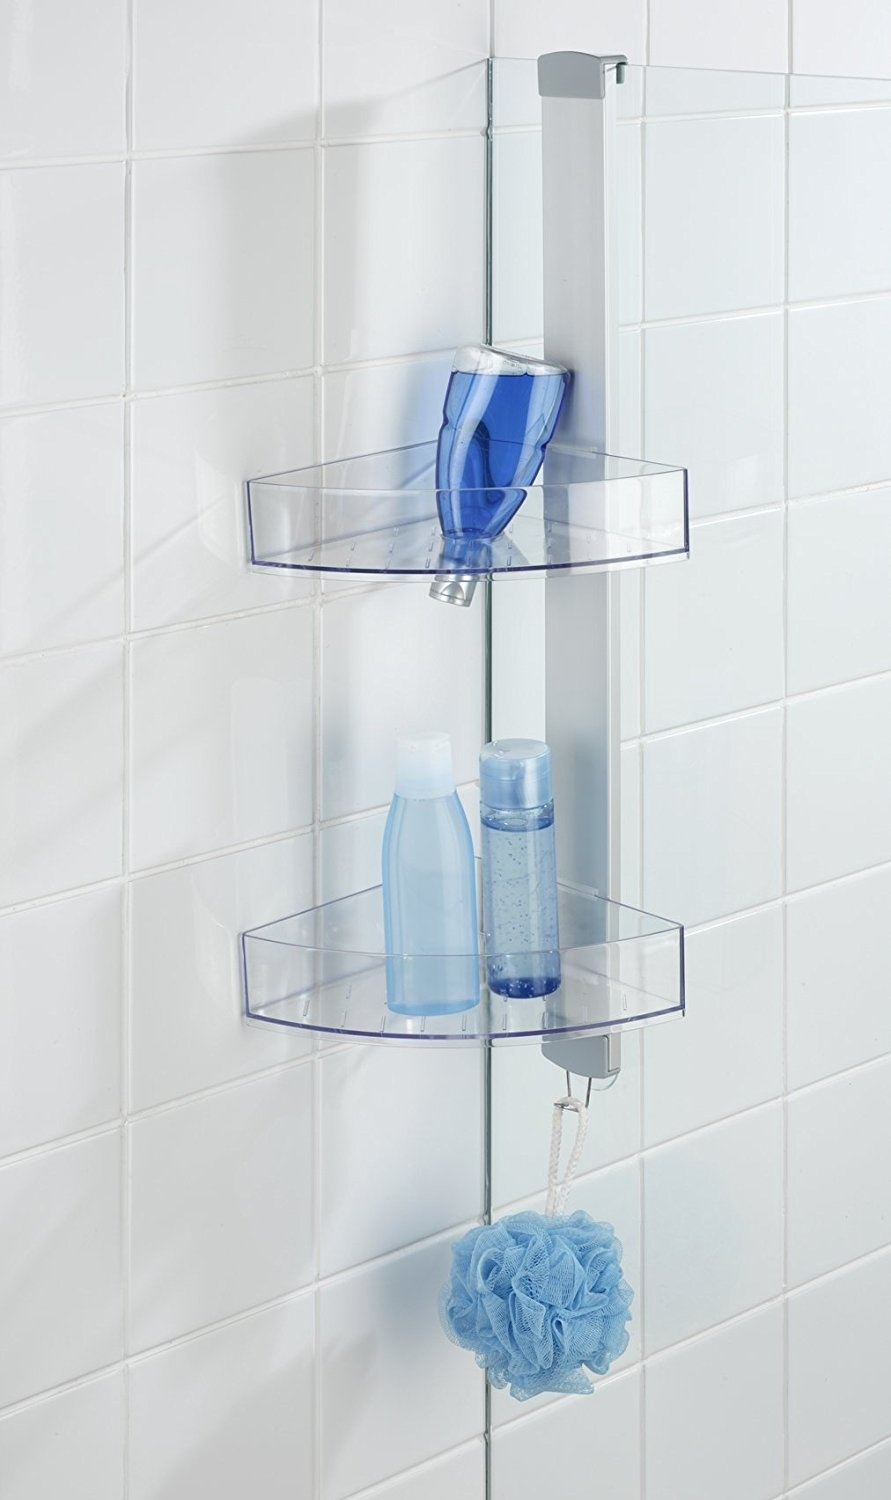 Corner Shower Caddy Homeware: Buy Online from Fishpond.com.au